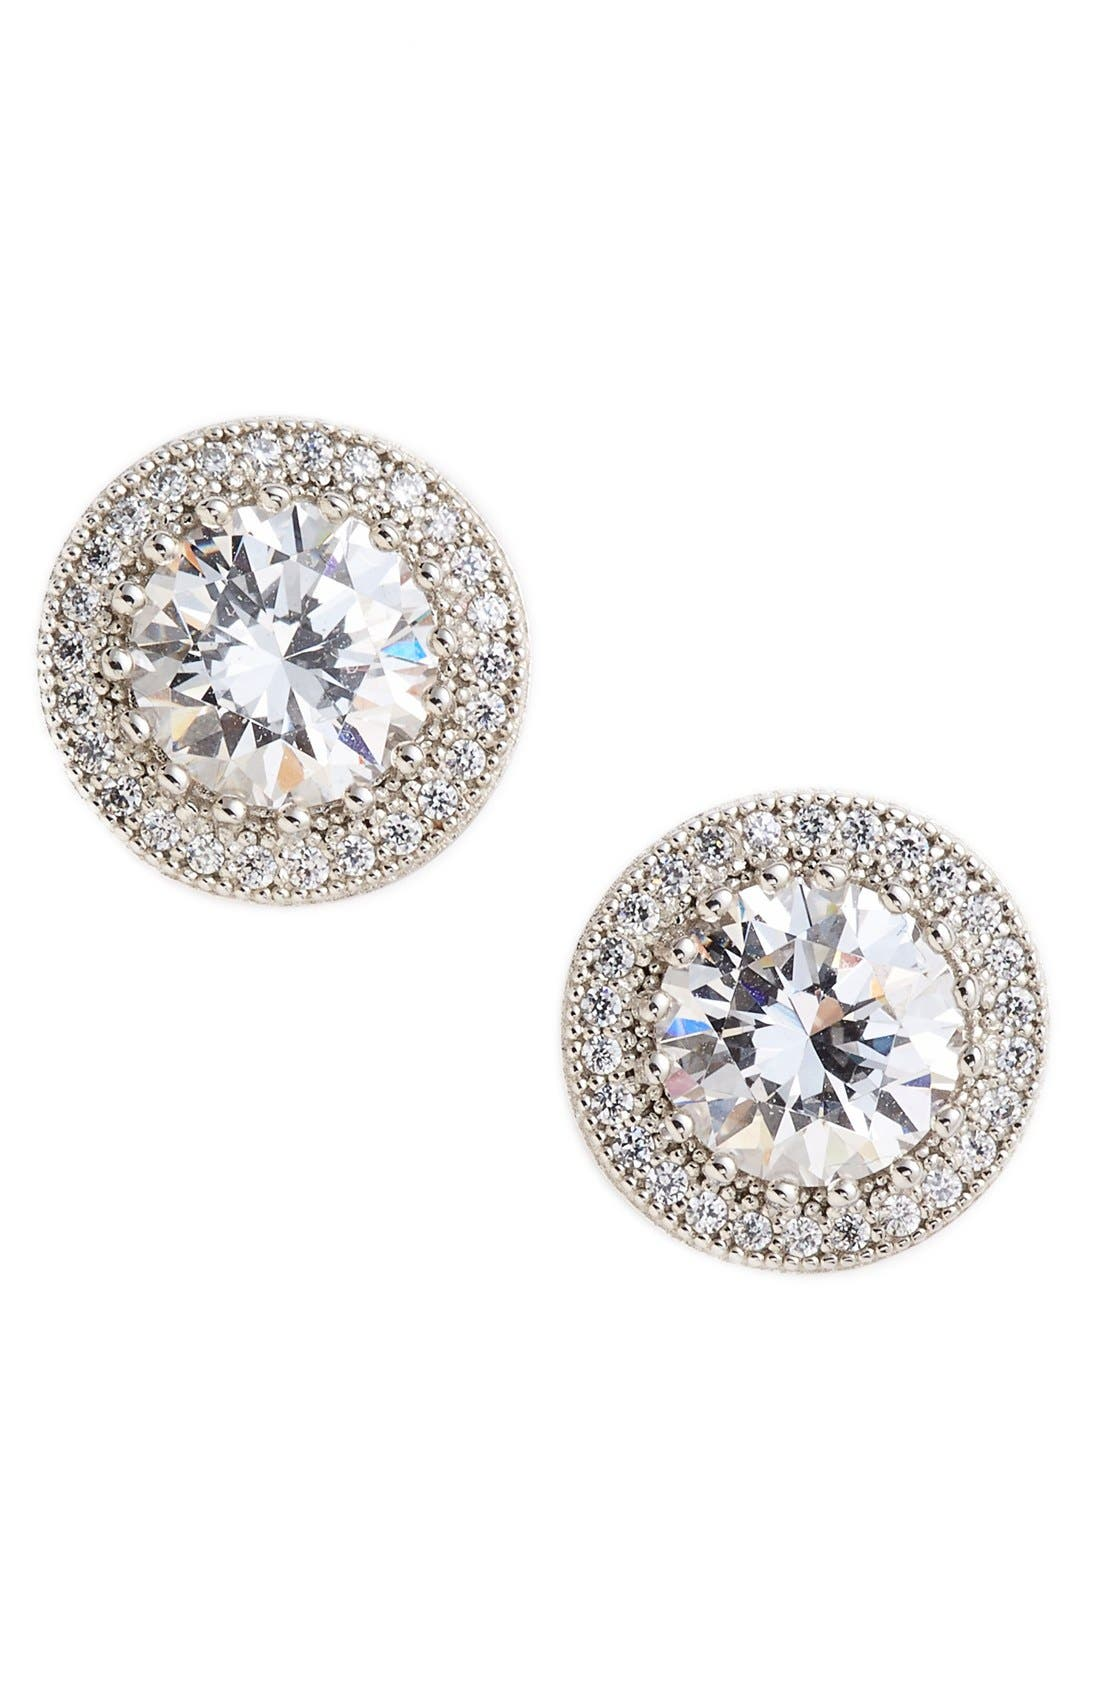 Alternate Image 1 Selected - Lafonn 'Lassaire' Stud Earrings